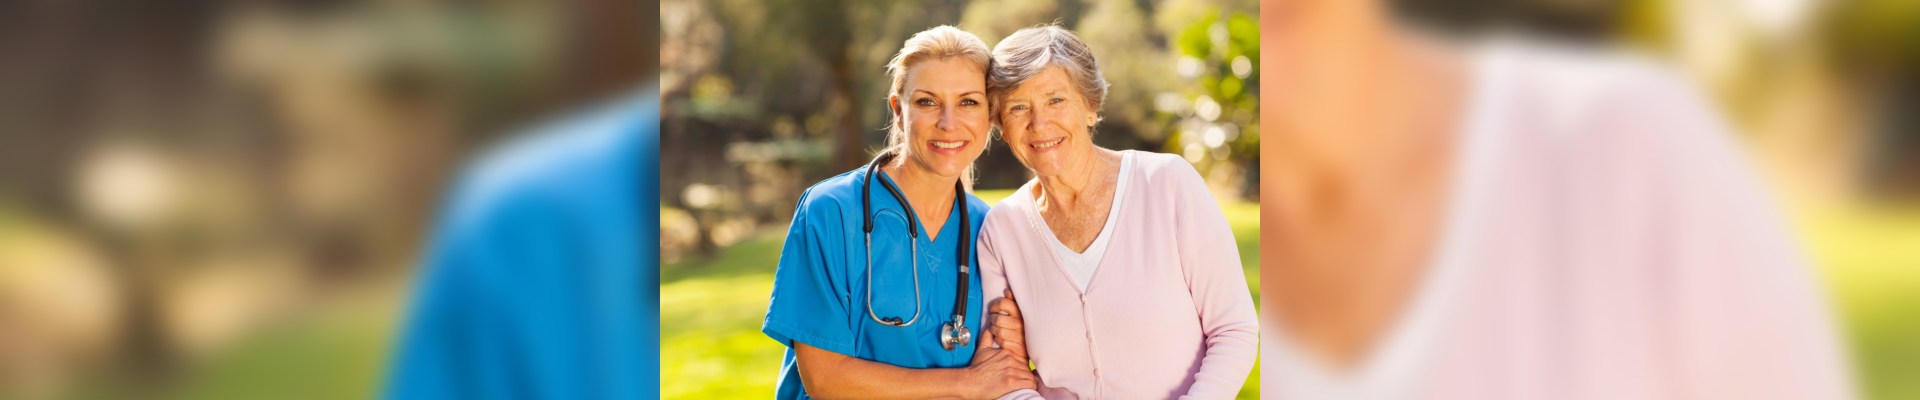 woman and nurse with stethoscope smiling